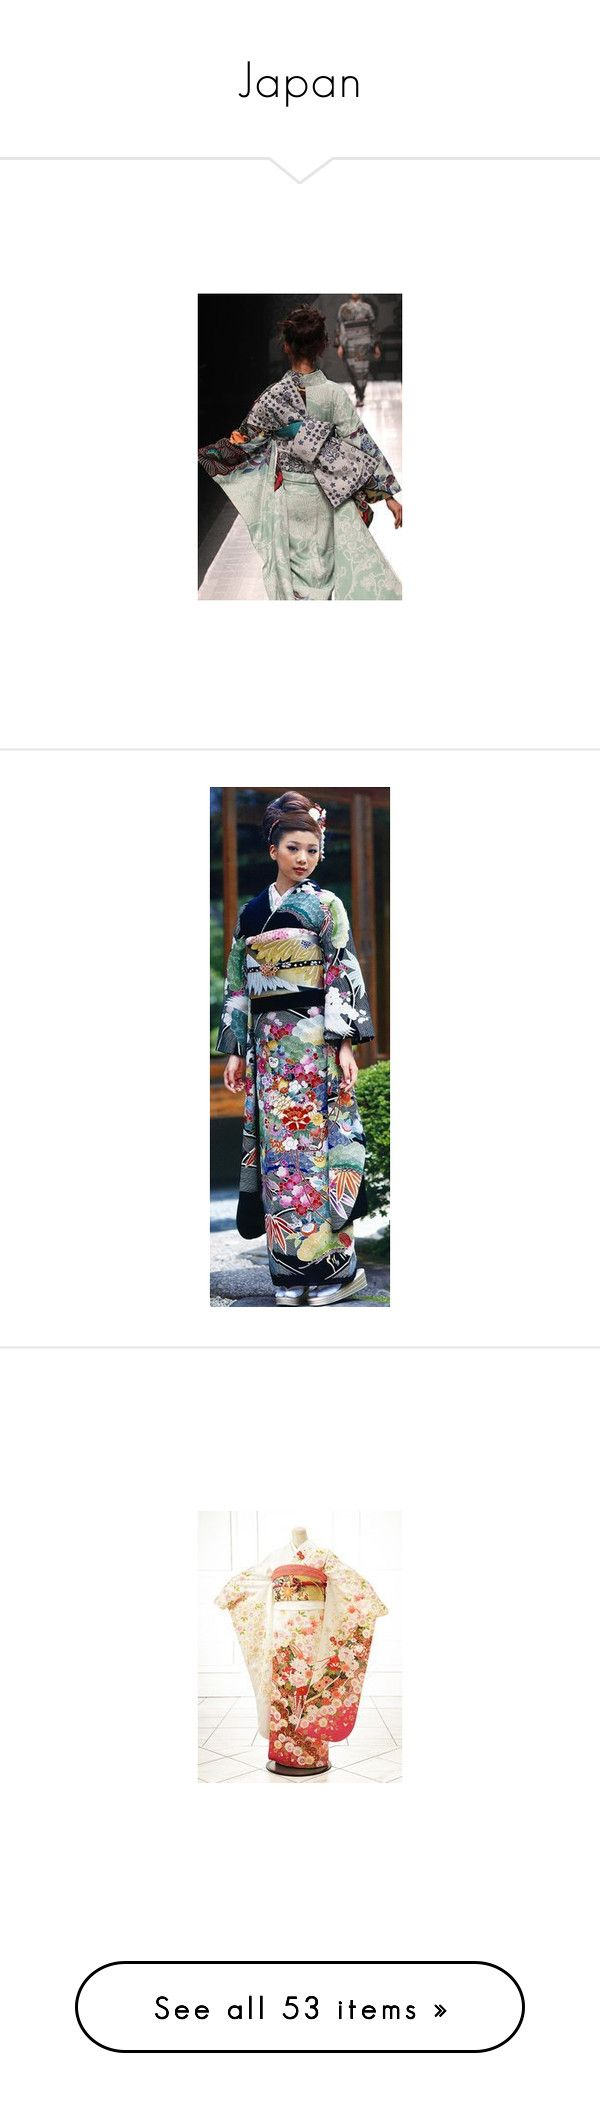 """Japan"" by floriane97 ❤ liked on Polyvore featuring kimono bathrobe, dressing gown, petite bathrobes, kimono dressing gown, kimono robe, intimates, robes, kimono bath robe, robe kimono and bath robes"